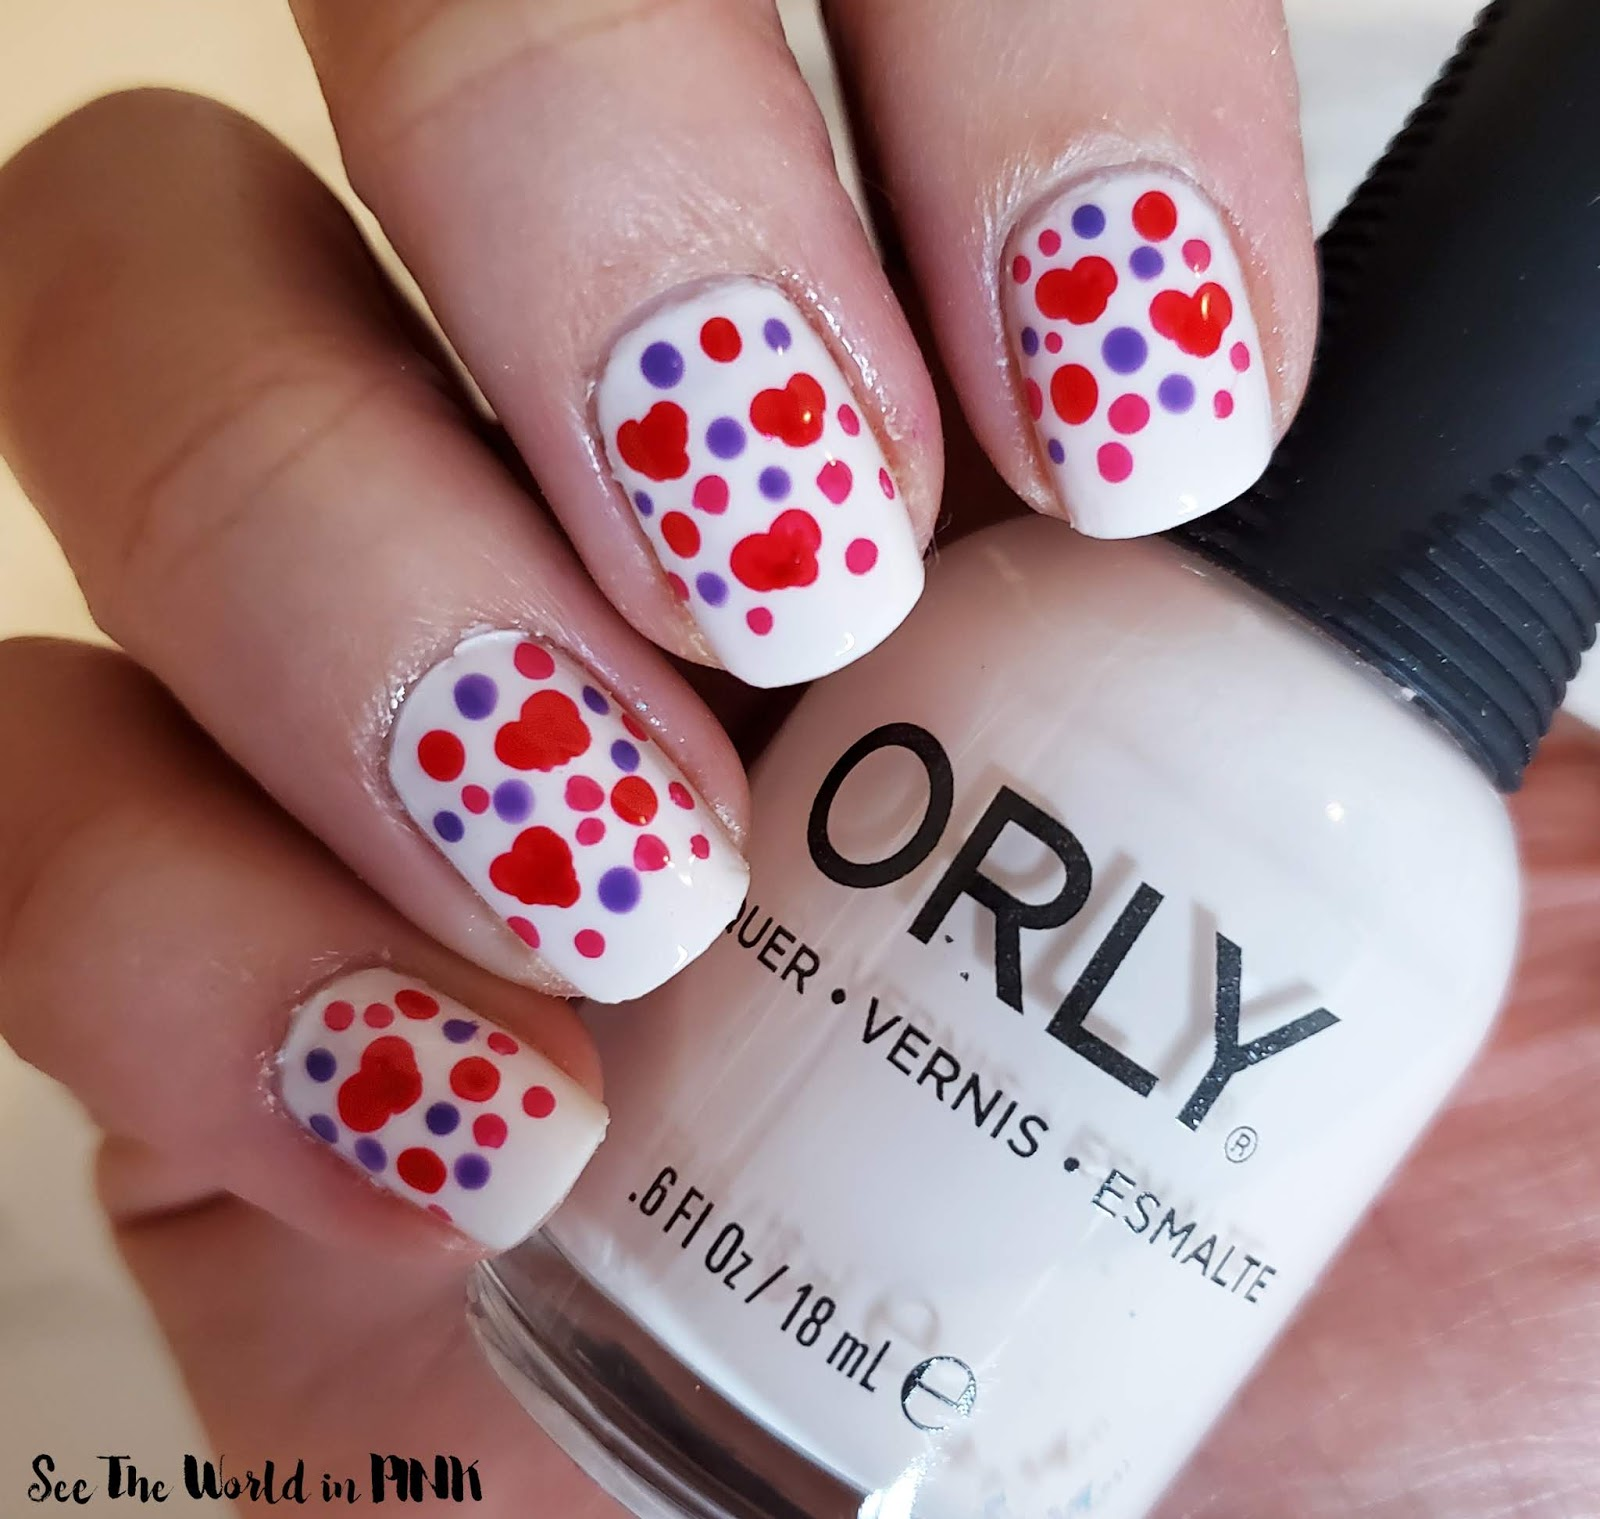 Manicure Monday - Valentine's Dotticure with Hearts